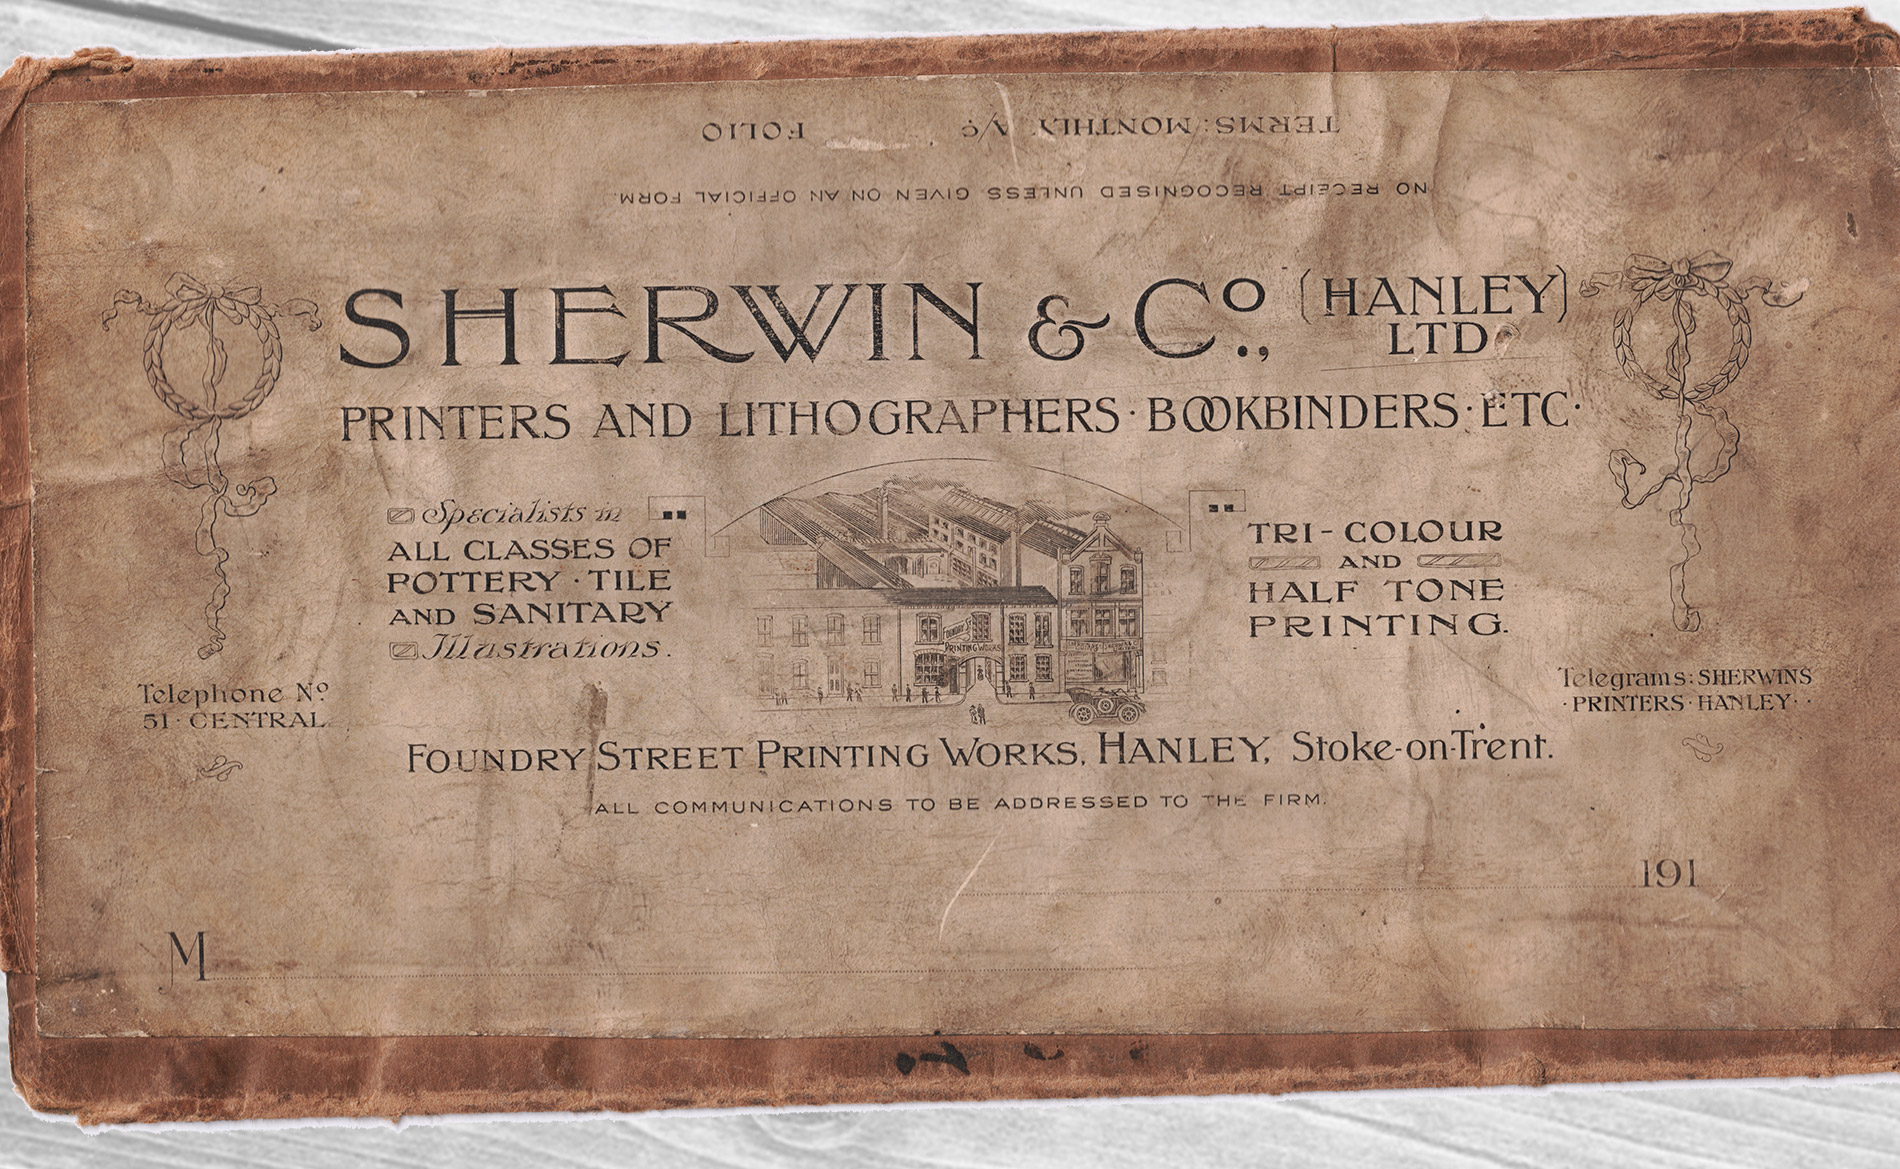 Sherwin Rivers Printers Ltd - Stoke-on-Trent, Staffordshire, Family run printing company for over a century - Sherwin & Co Packaging from the turn of the century